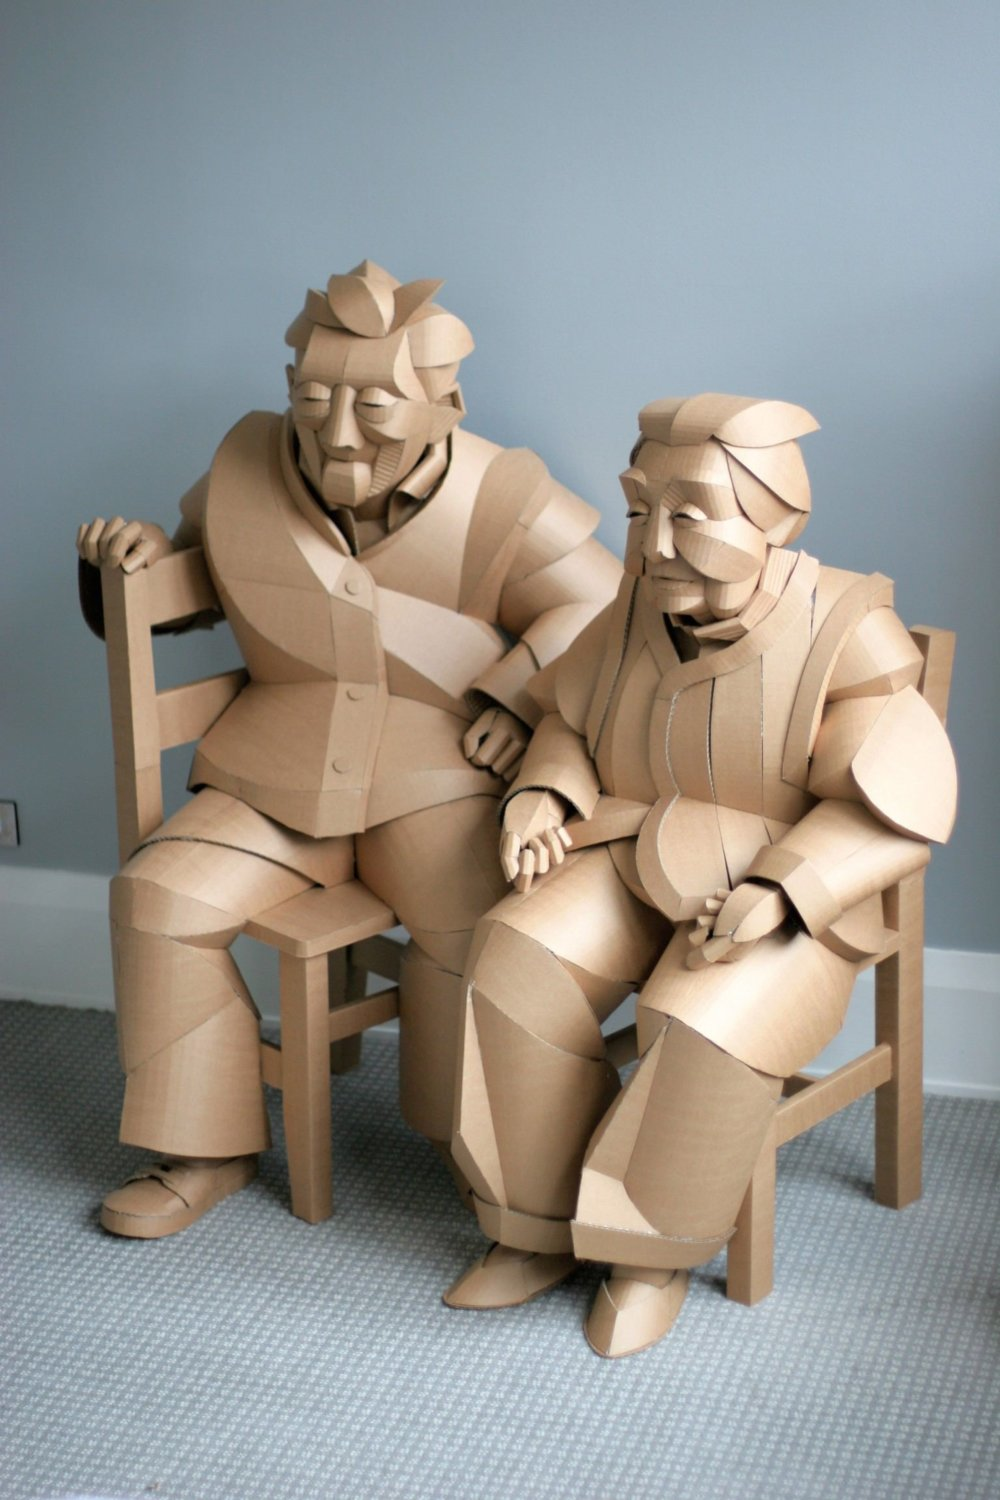 Magnificent Figurative Sculptures Made Entirely Out Of Cardboard By Warren King 3